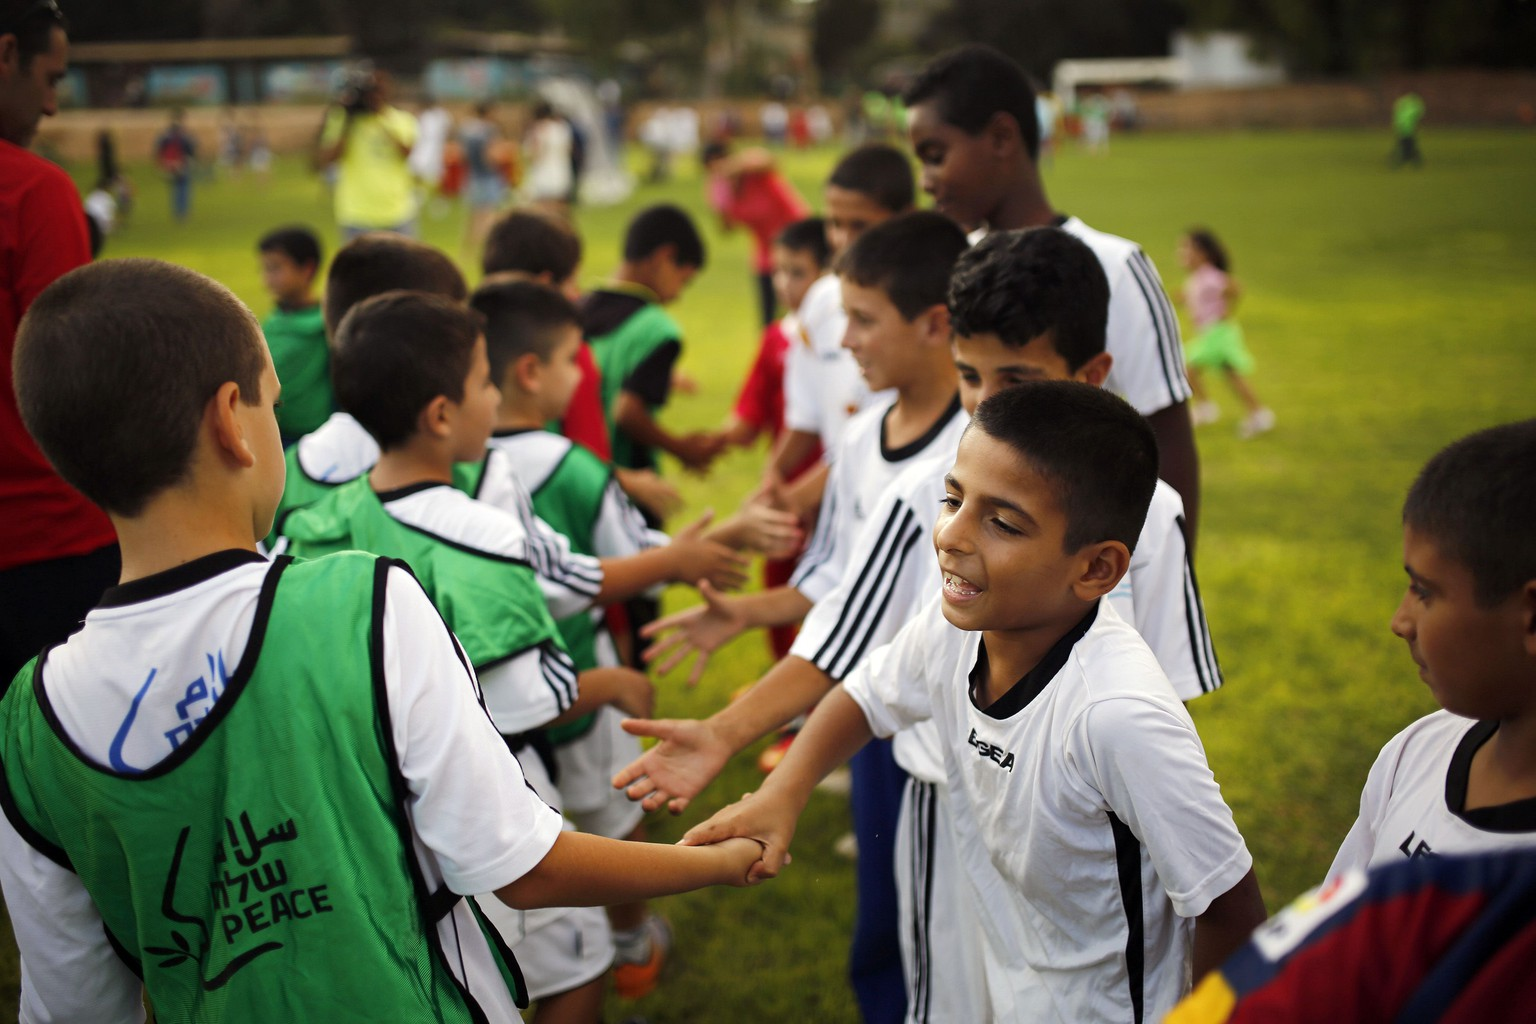 Israeli and Palestinian children shake hands during an event opening a year of training of an Israeli-Palestinian soccer program launched by the Peres Center for Peace, in Kibbutz Dorot, outside the Gaza Strip, September 1, 2014. An open-ended ceasefire in the Gaza war has held since August 27. Some 80 children from communities near the Gaza border and from the West Bank Palestinian village of Yatta took part in the training session, the first since the ceasefire started. REUTERS/Amir Cohen (ISRAEL - Tags: POLITICS EDUCATION SPORT SOCCER TPX IMAGES OF THE DAY)